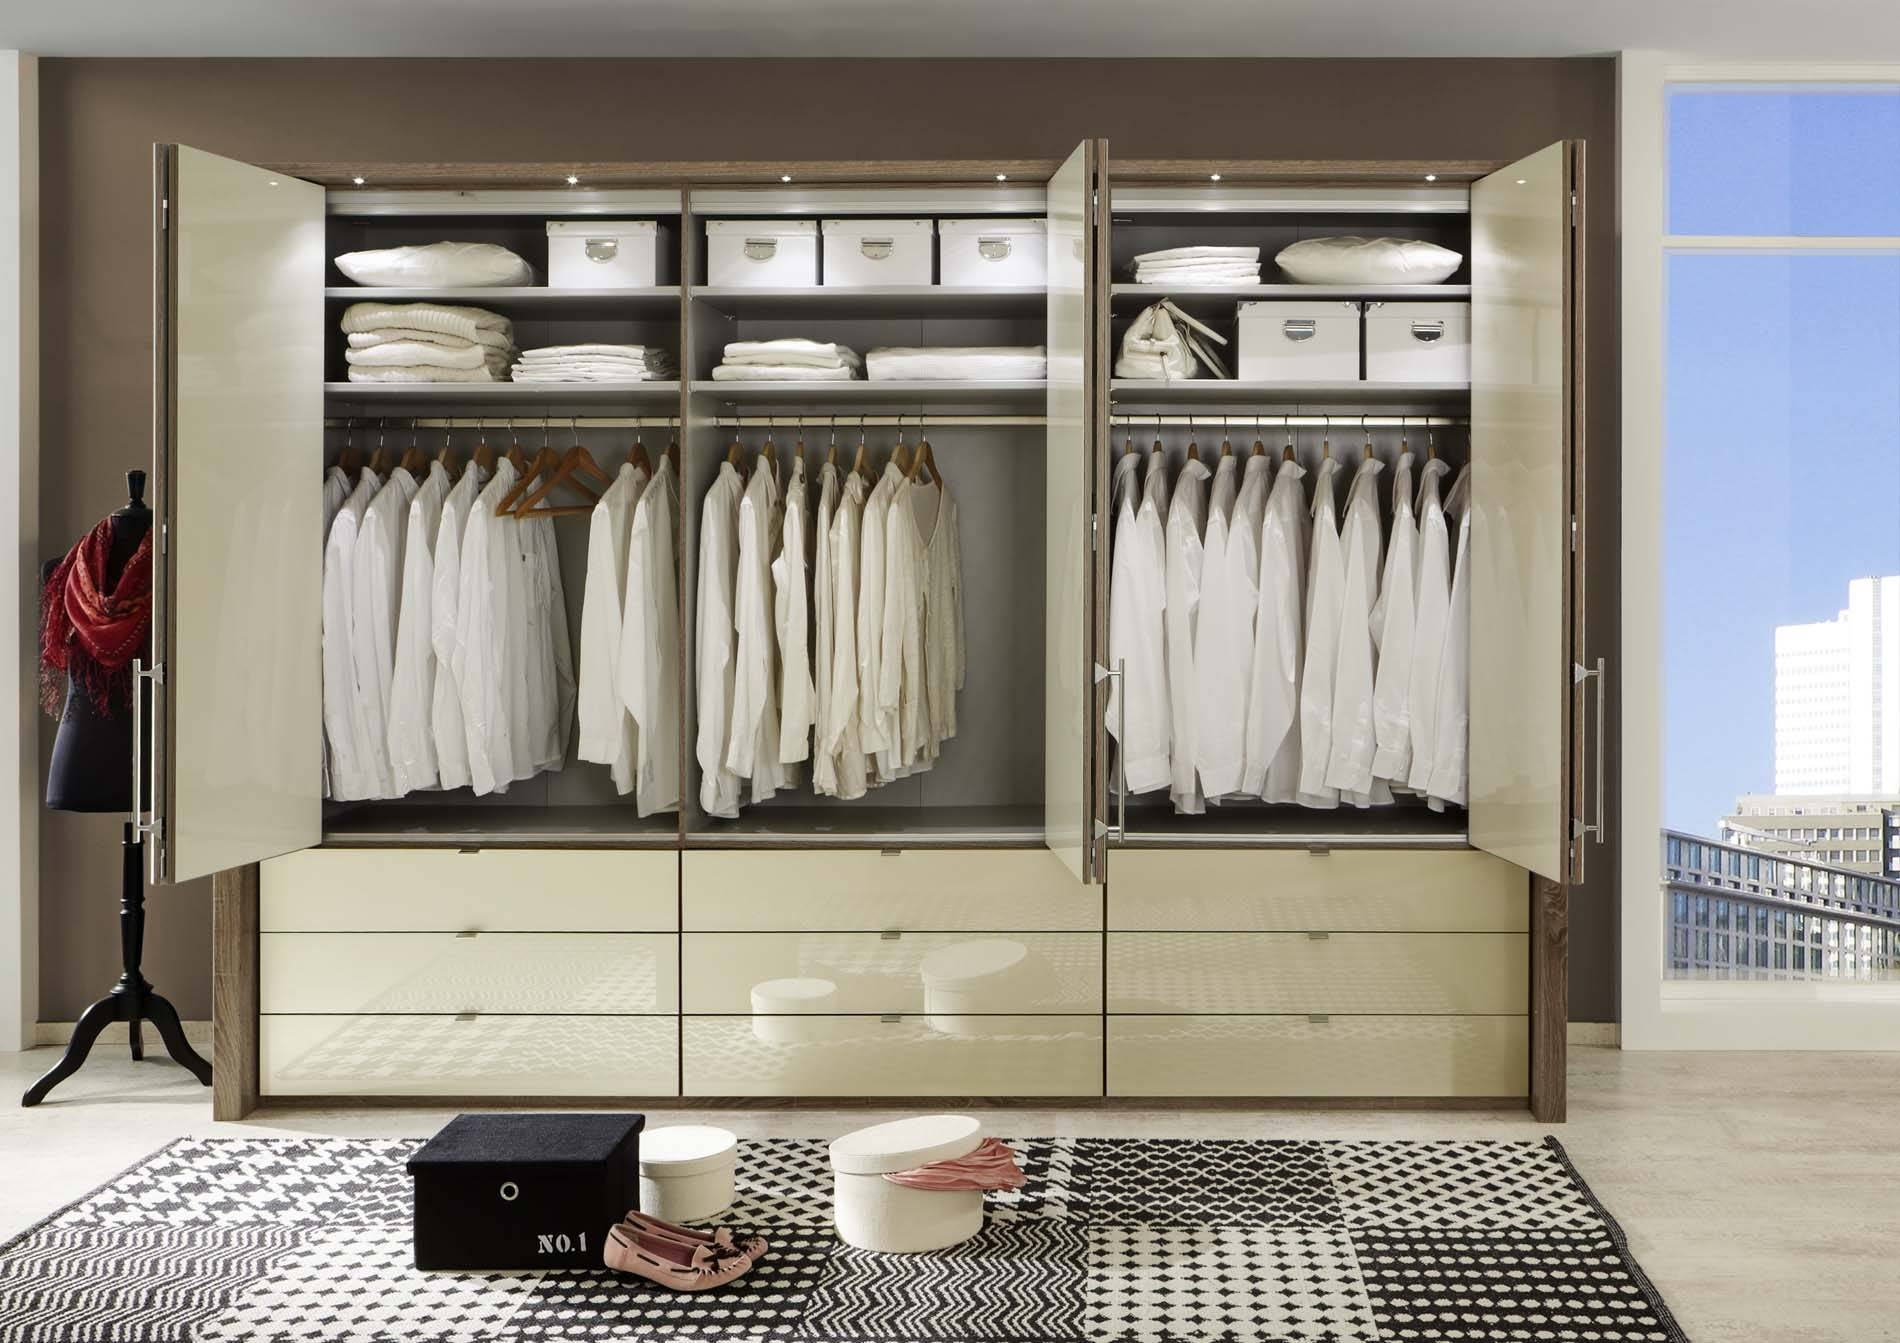 Kensington 6 Door 9 Drawer Wardrobe | Crendon Beds regarding 6 Door Wardrobes (Image 9 of 15)